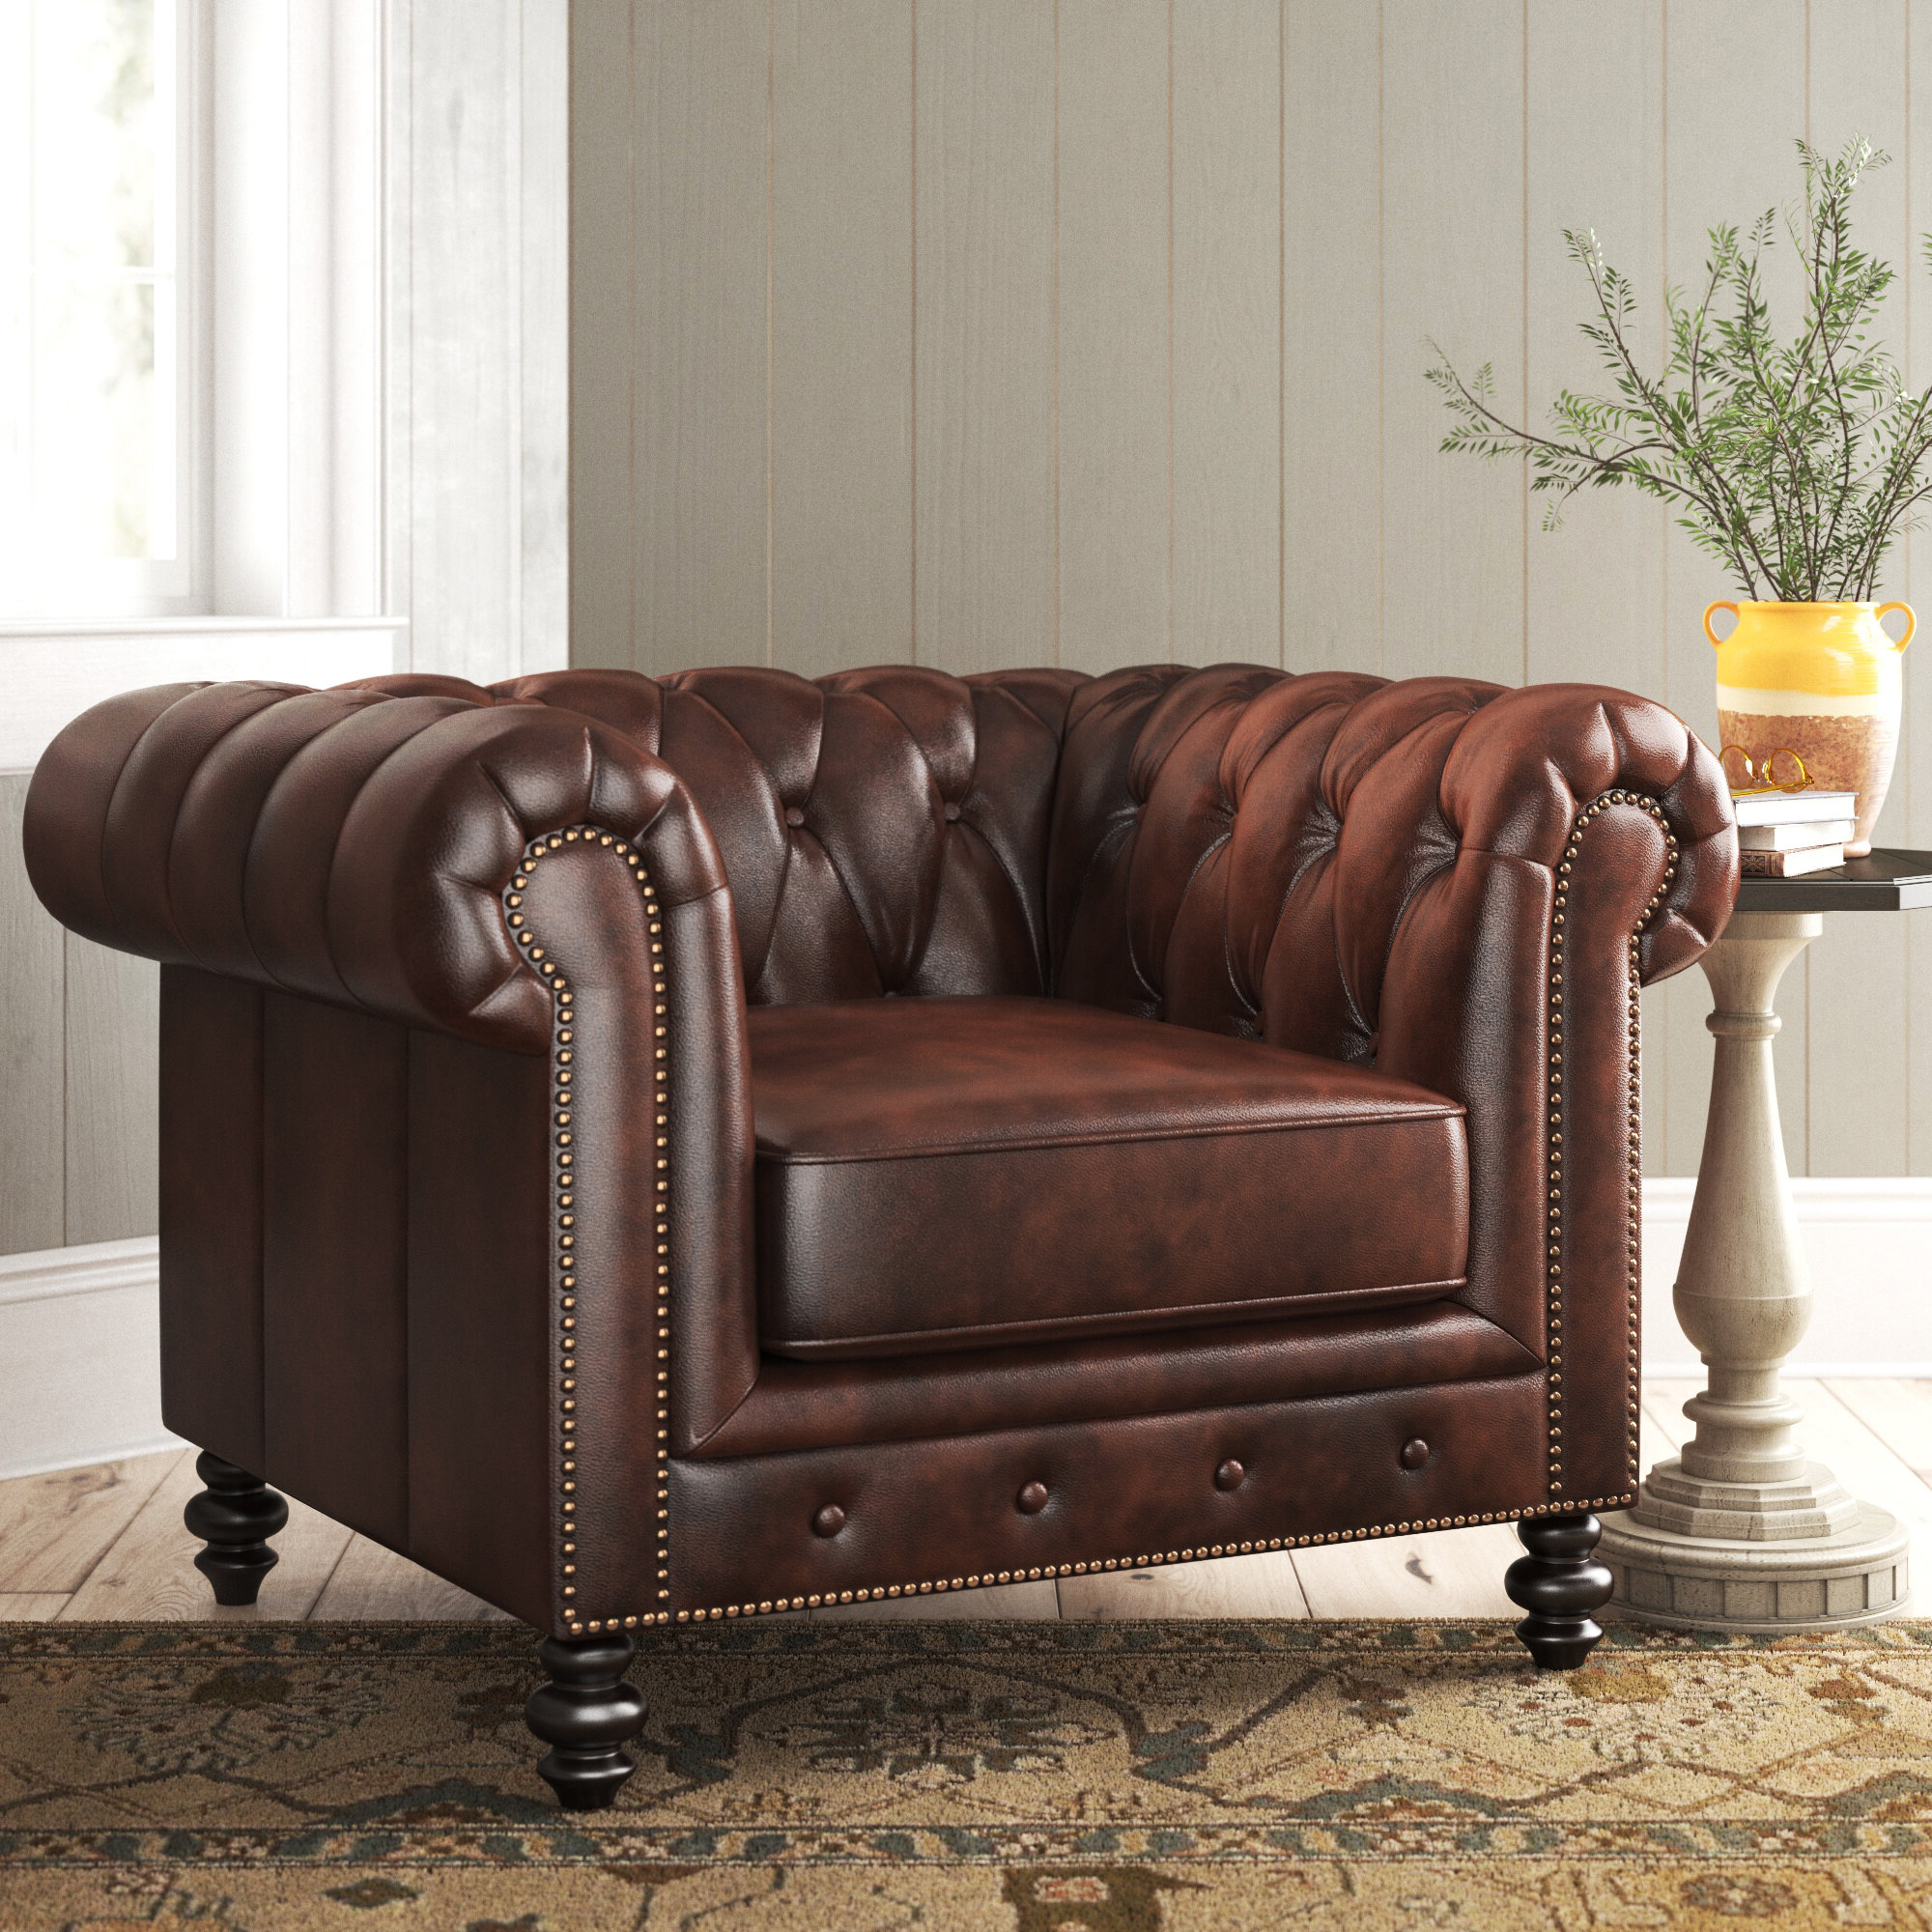 2019 Kjellfrid Chesterfield Chairs Inside Chesterfield Espresso Wood Accent Chairs You'll Love In (View 3 of 20)